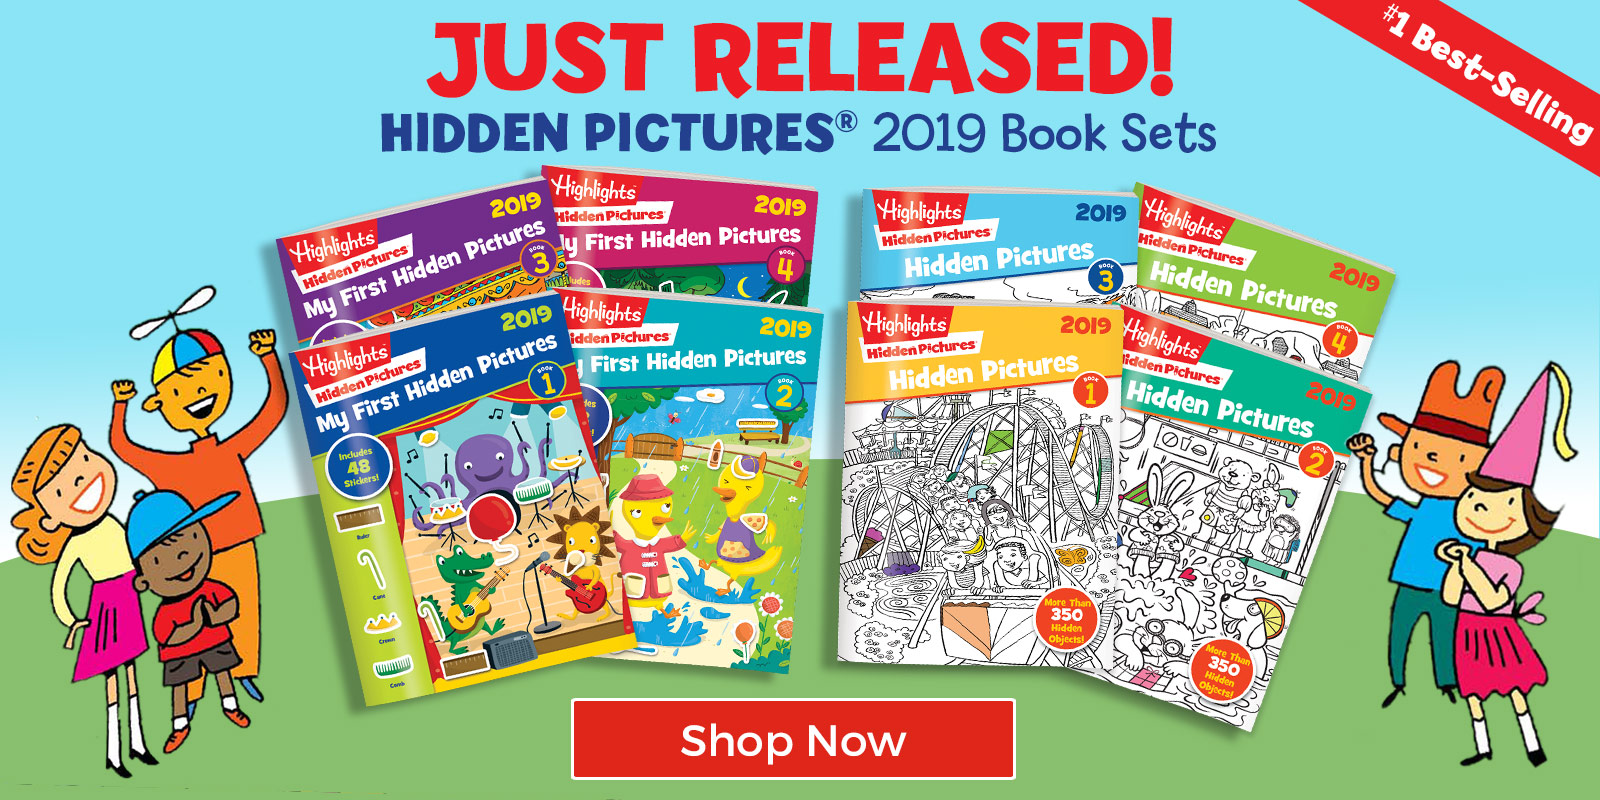 Just Released! #1 Best-Selling Hidden Pictures 2019 Book Sets